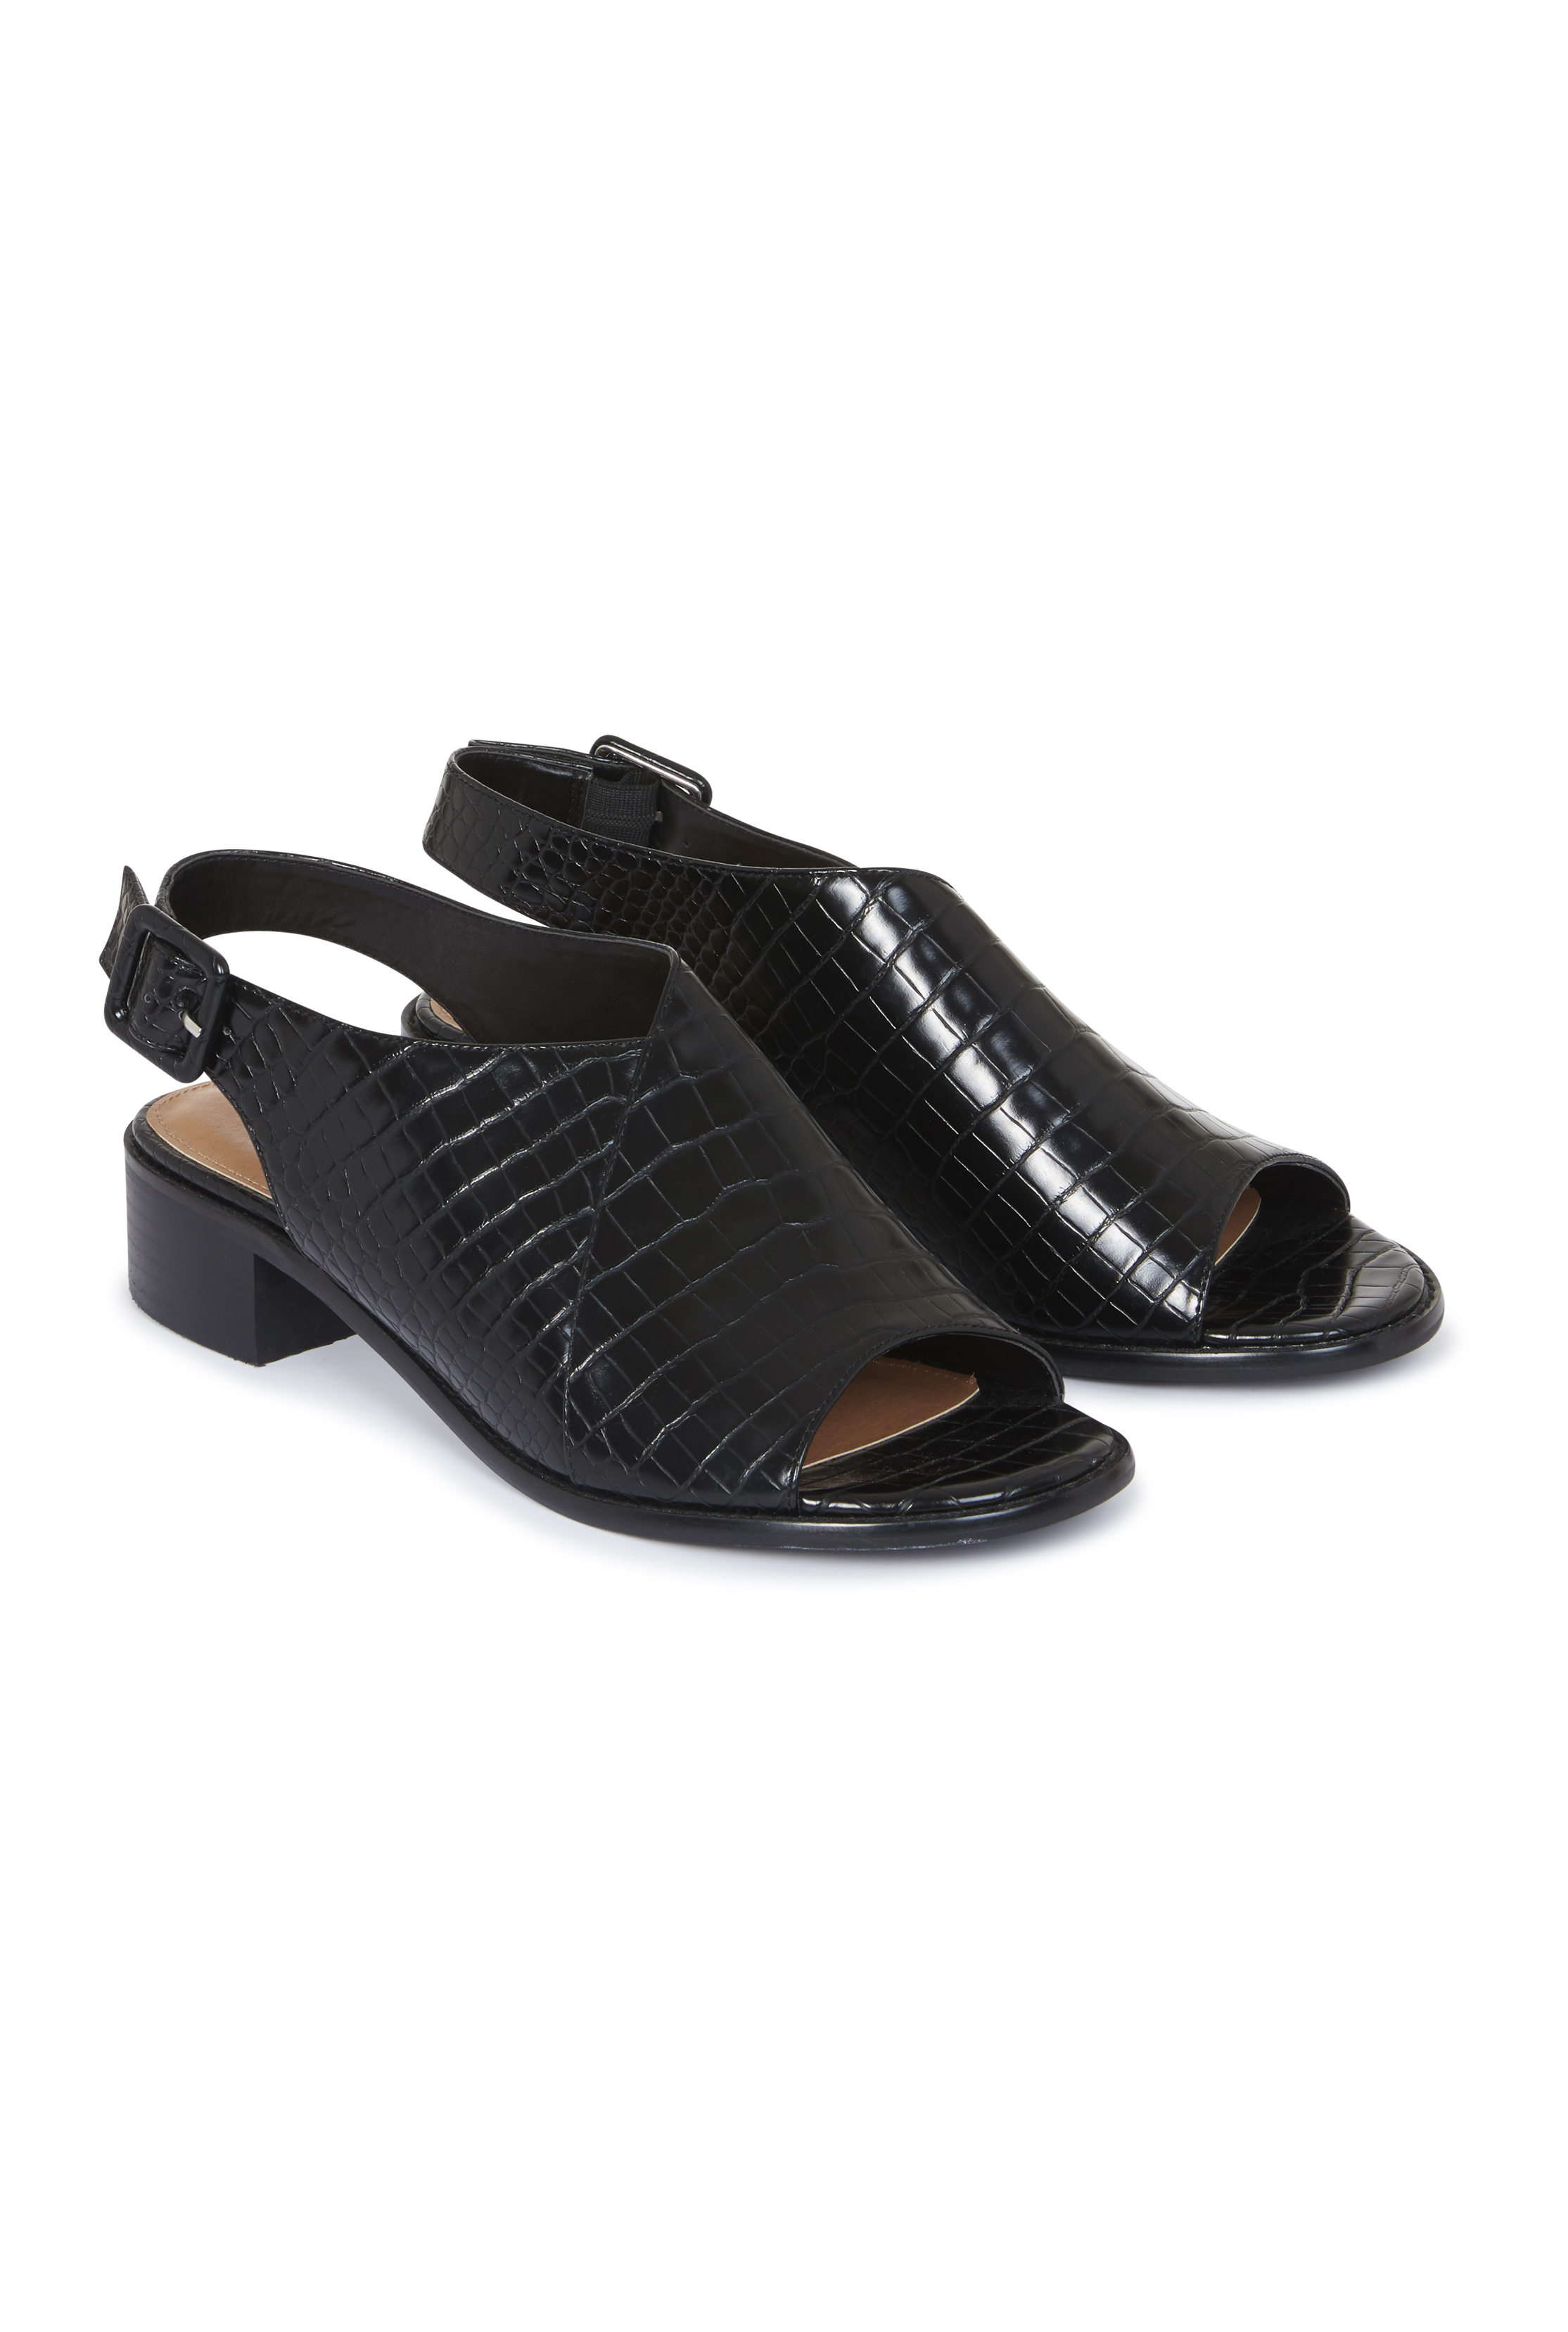 Black Croc Slingback Heeled Sandals